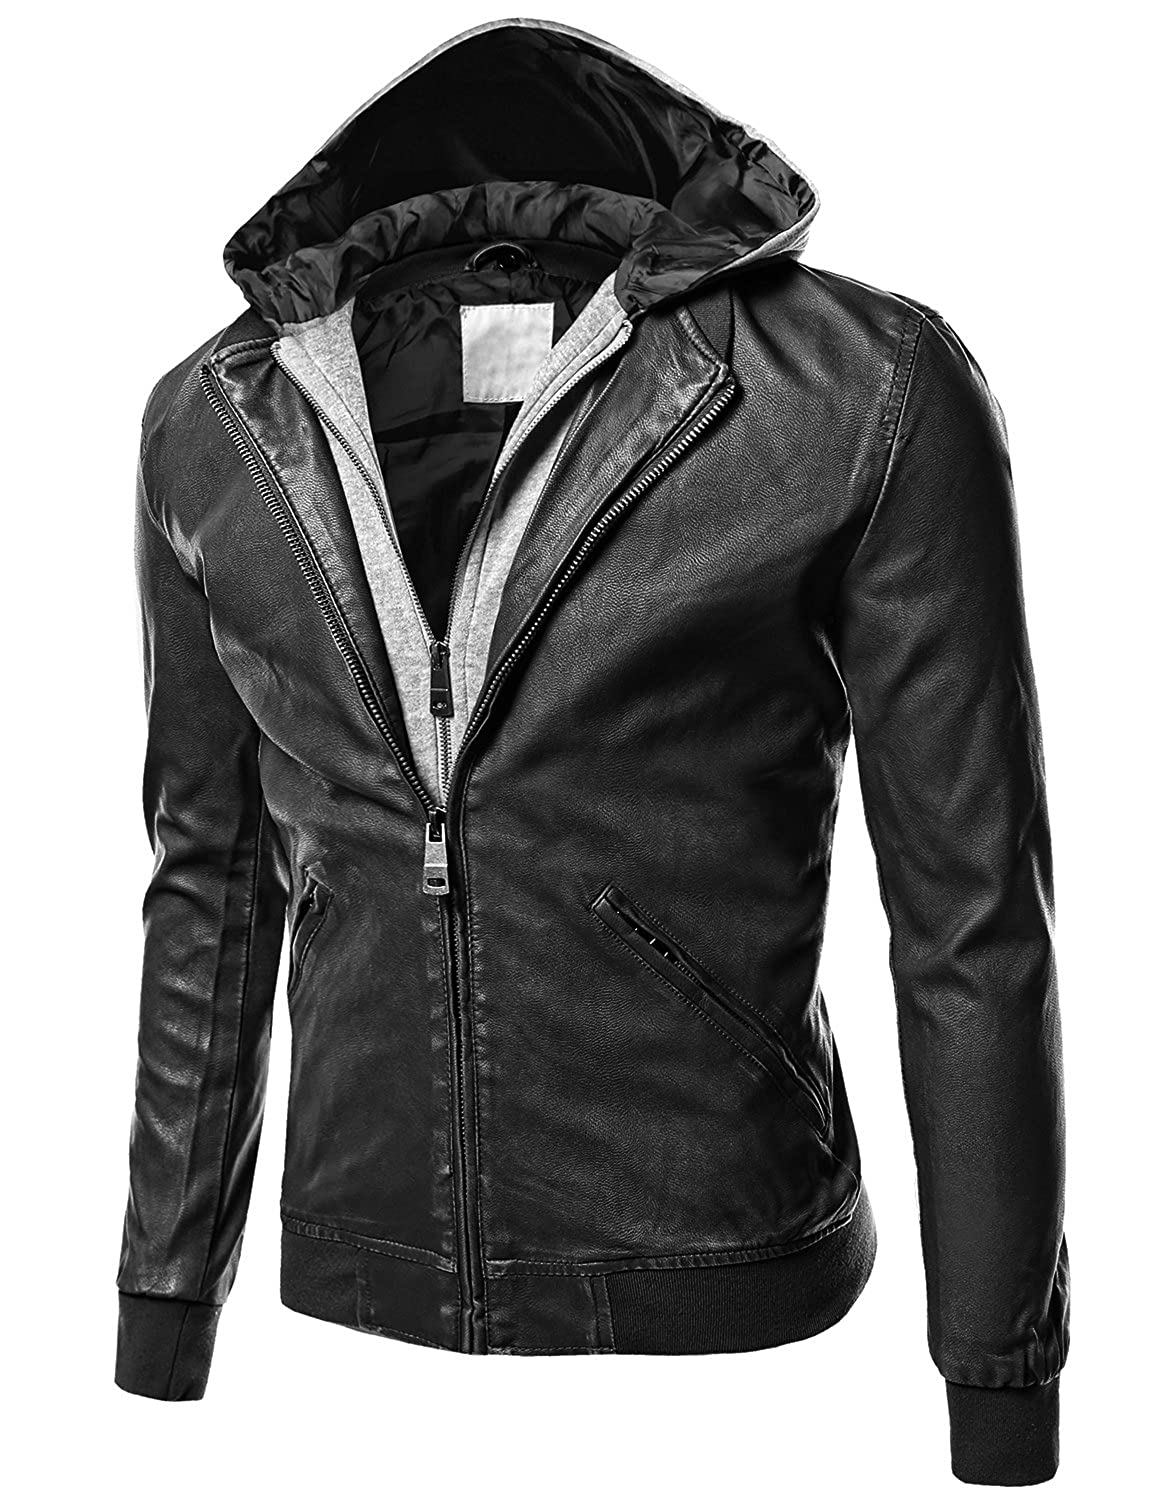 Wantdo Men's Fashion Faux Jackets Pu Leather Jackets With Removable Hood With Gift Youstar Men s Moto Racer Faux